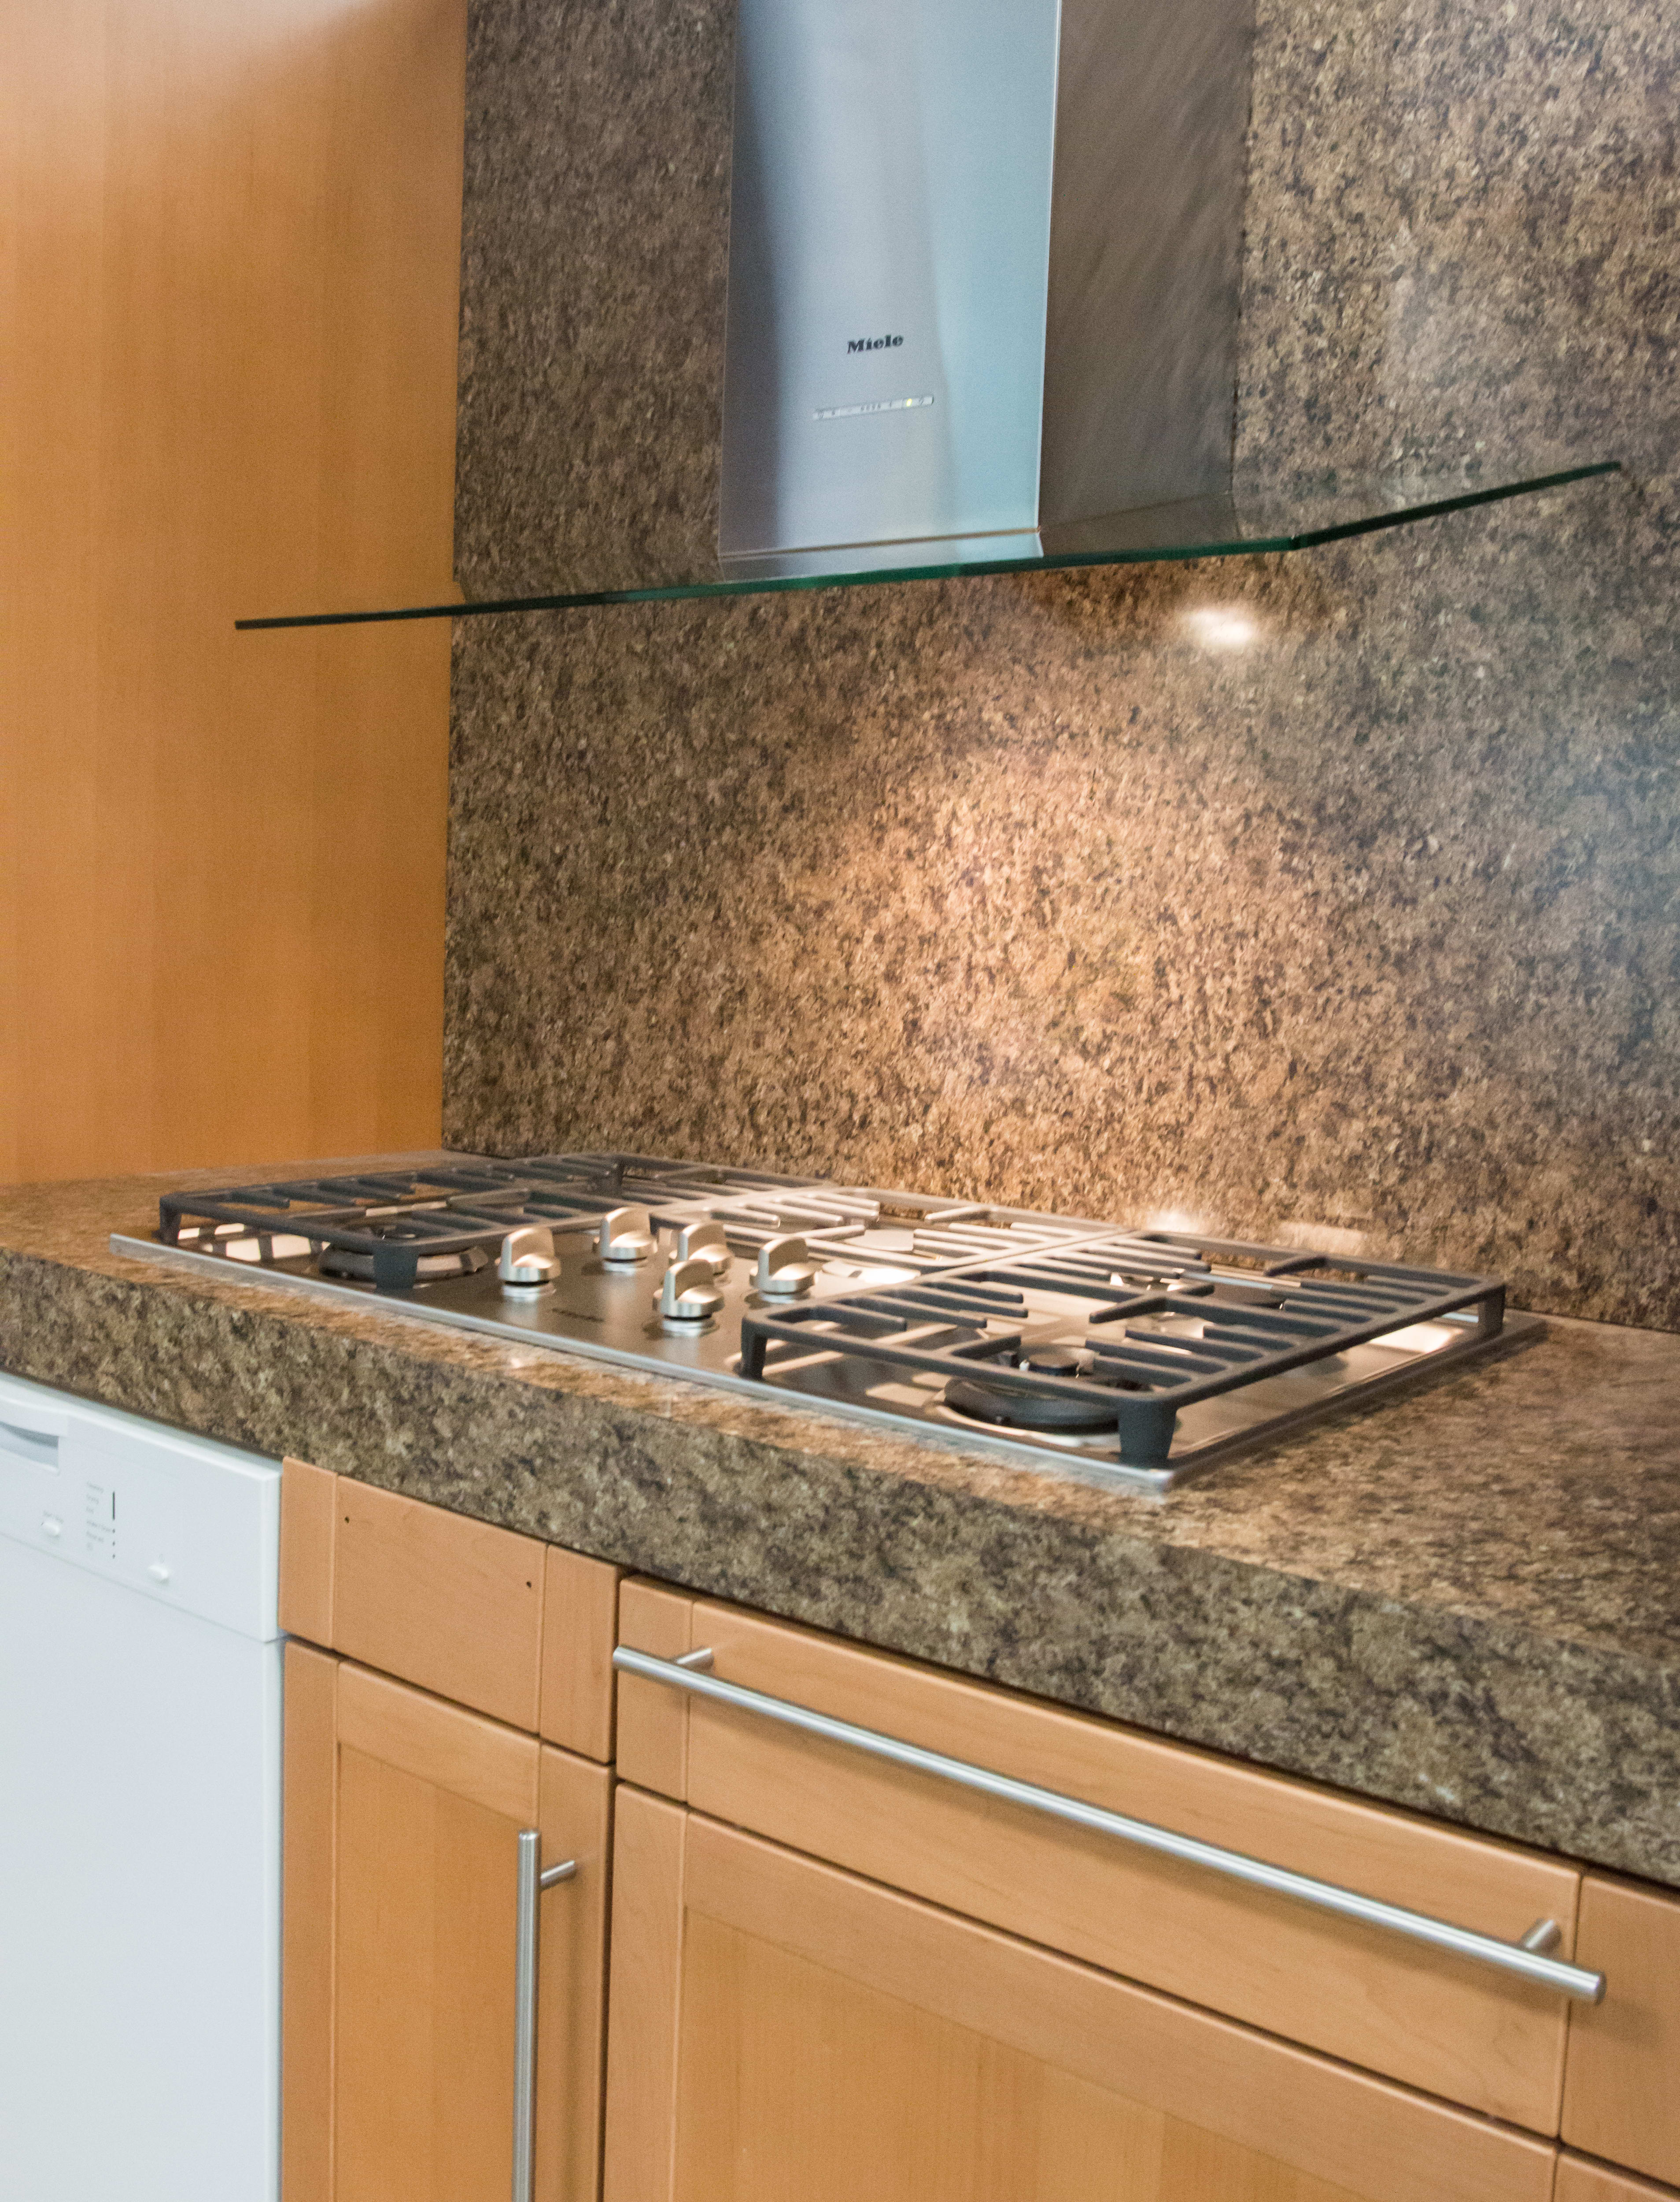 cooktop installed in kitchen